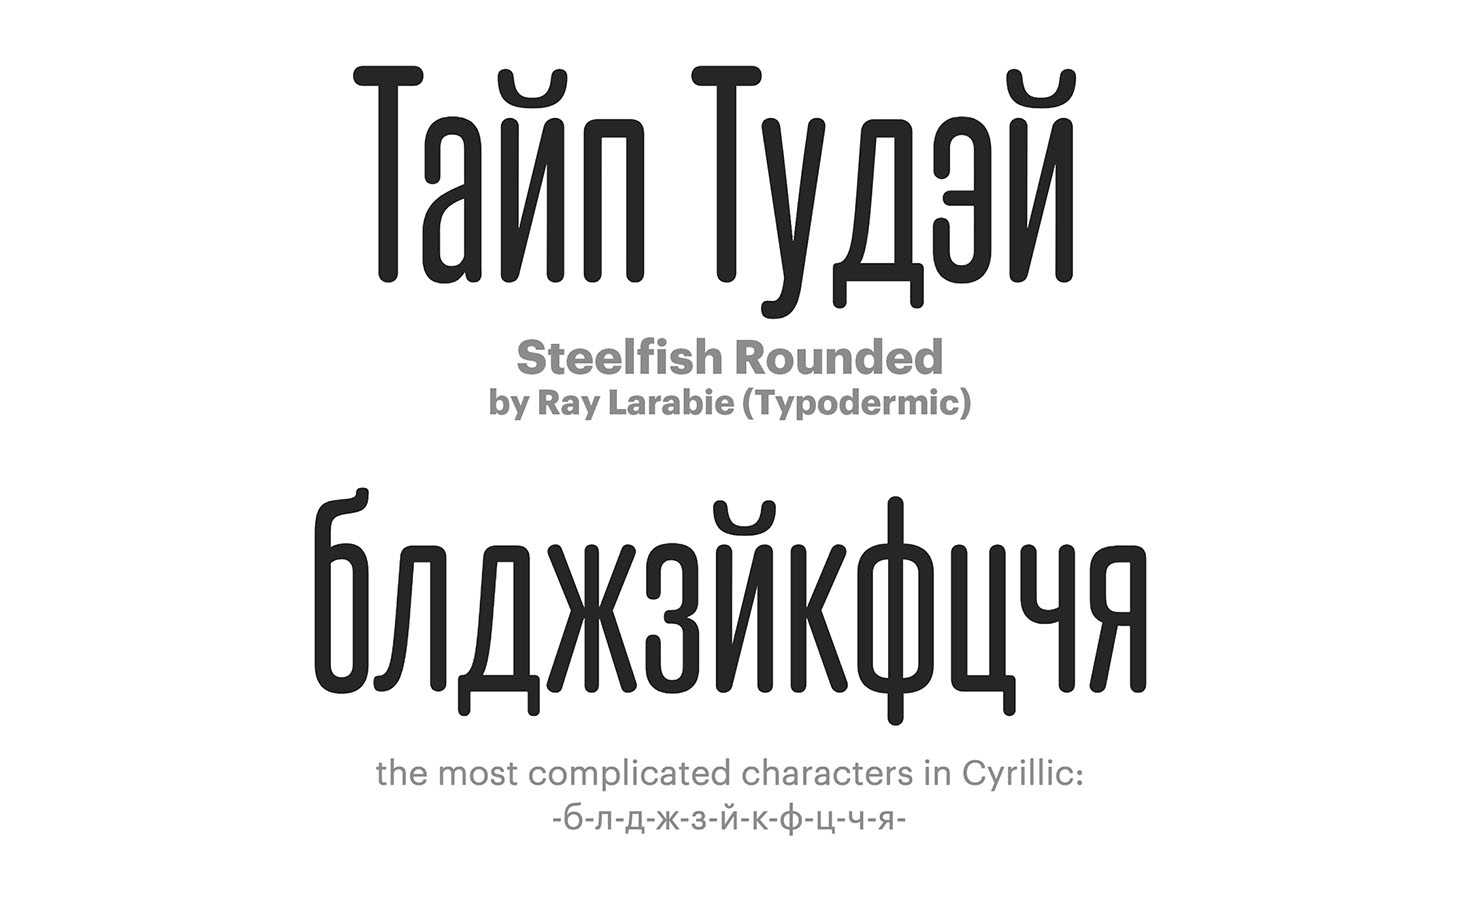 Steelfish-Rounded